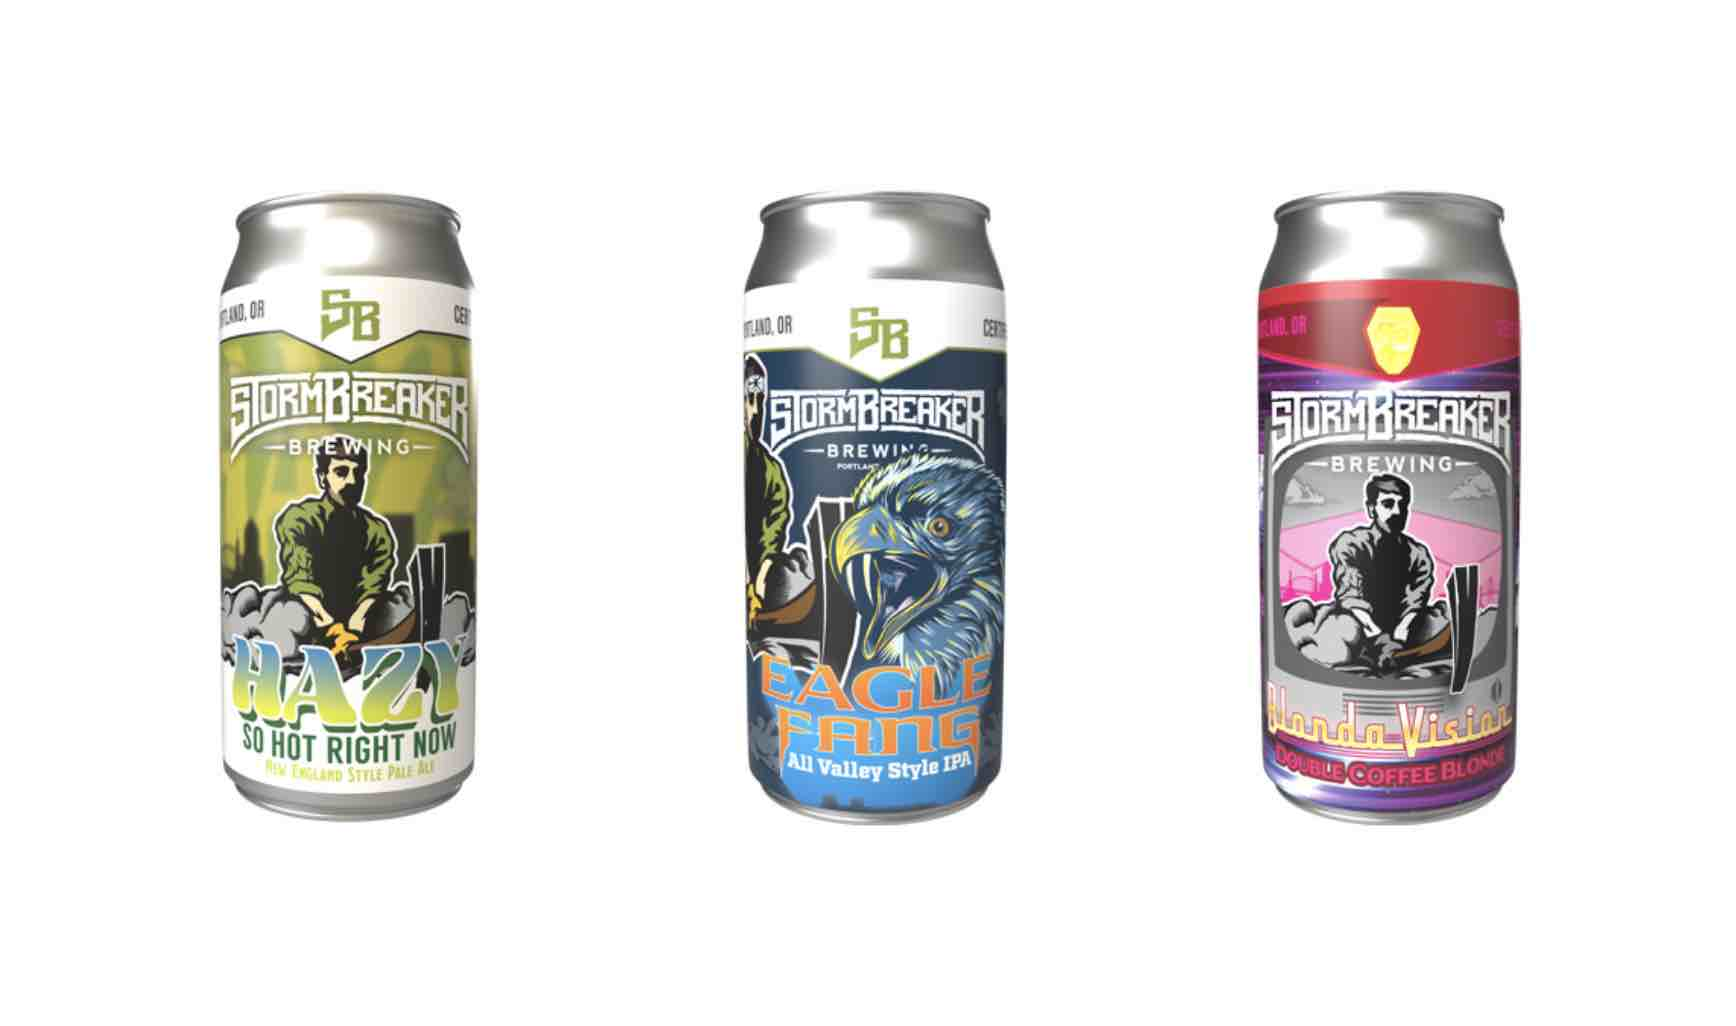 StormBreaker Brewing Releases Hazy So Hot Right Now, Eagle Fang!, and BlondaVision